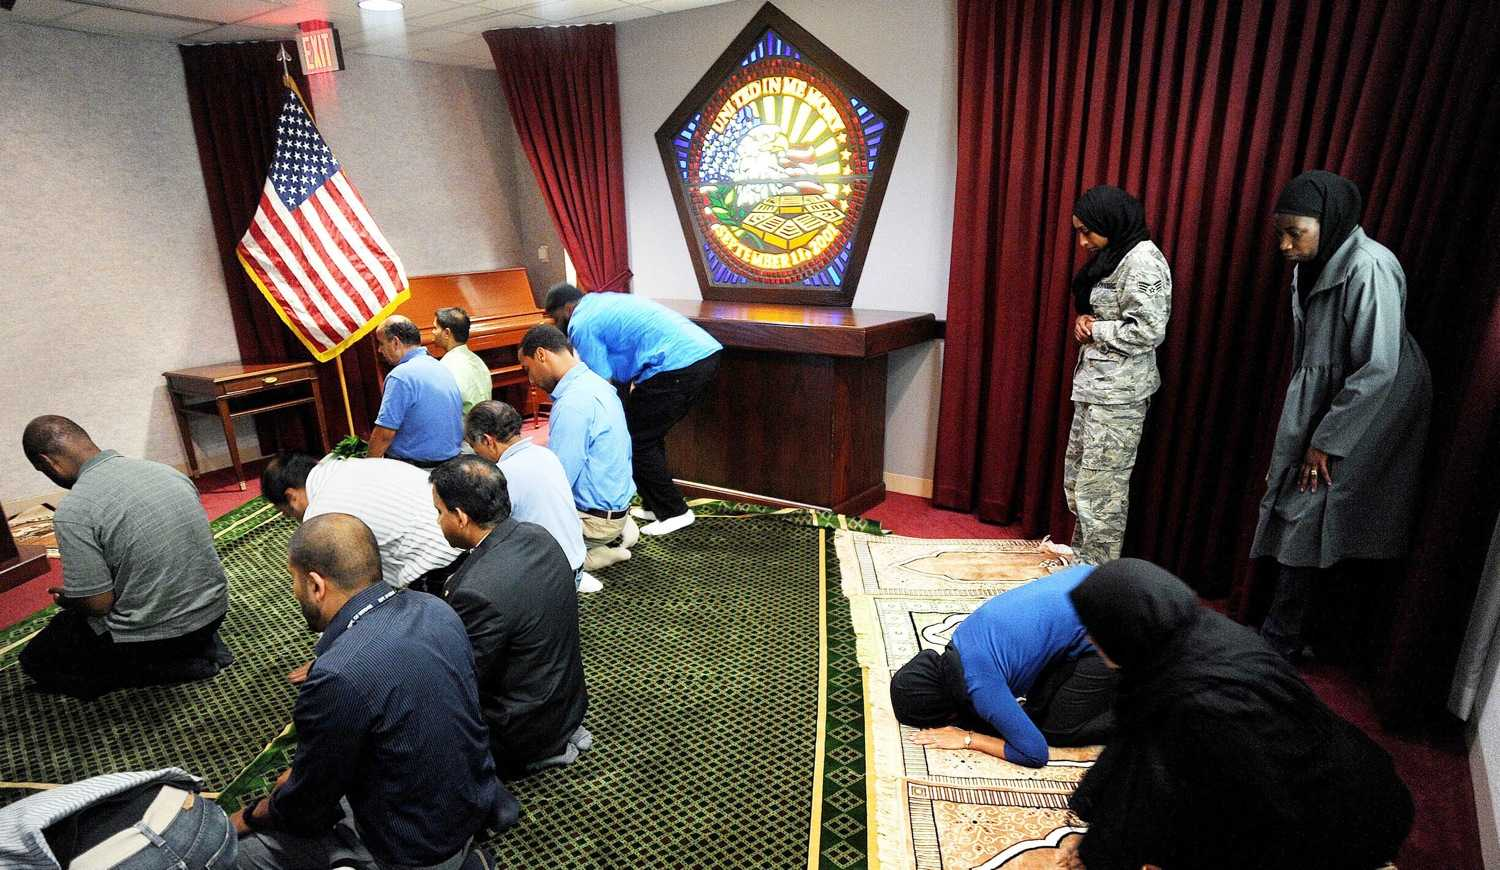 The Pentagon is one place where there's no discussion of whether it's appropriate for Muslims to pray near the site of the 9/11 attacks. Every Friday, Muslims gather to worship in a chapel built in the very space where a hijacked jetliner plunged into the Pentagon on Sept. 11, 2001.(Olivier Douliery/Abaca Press/MCT)